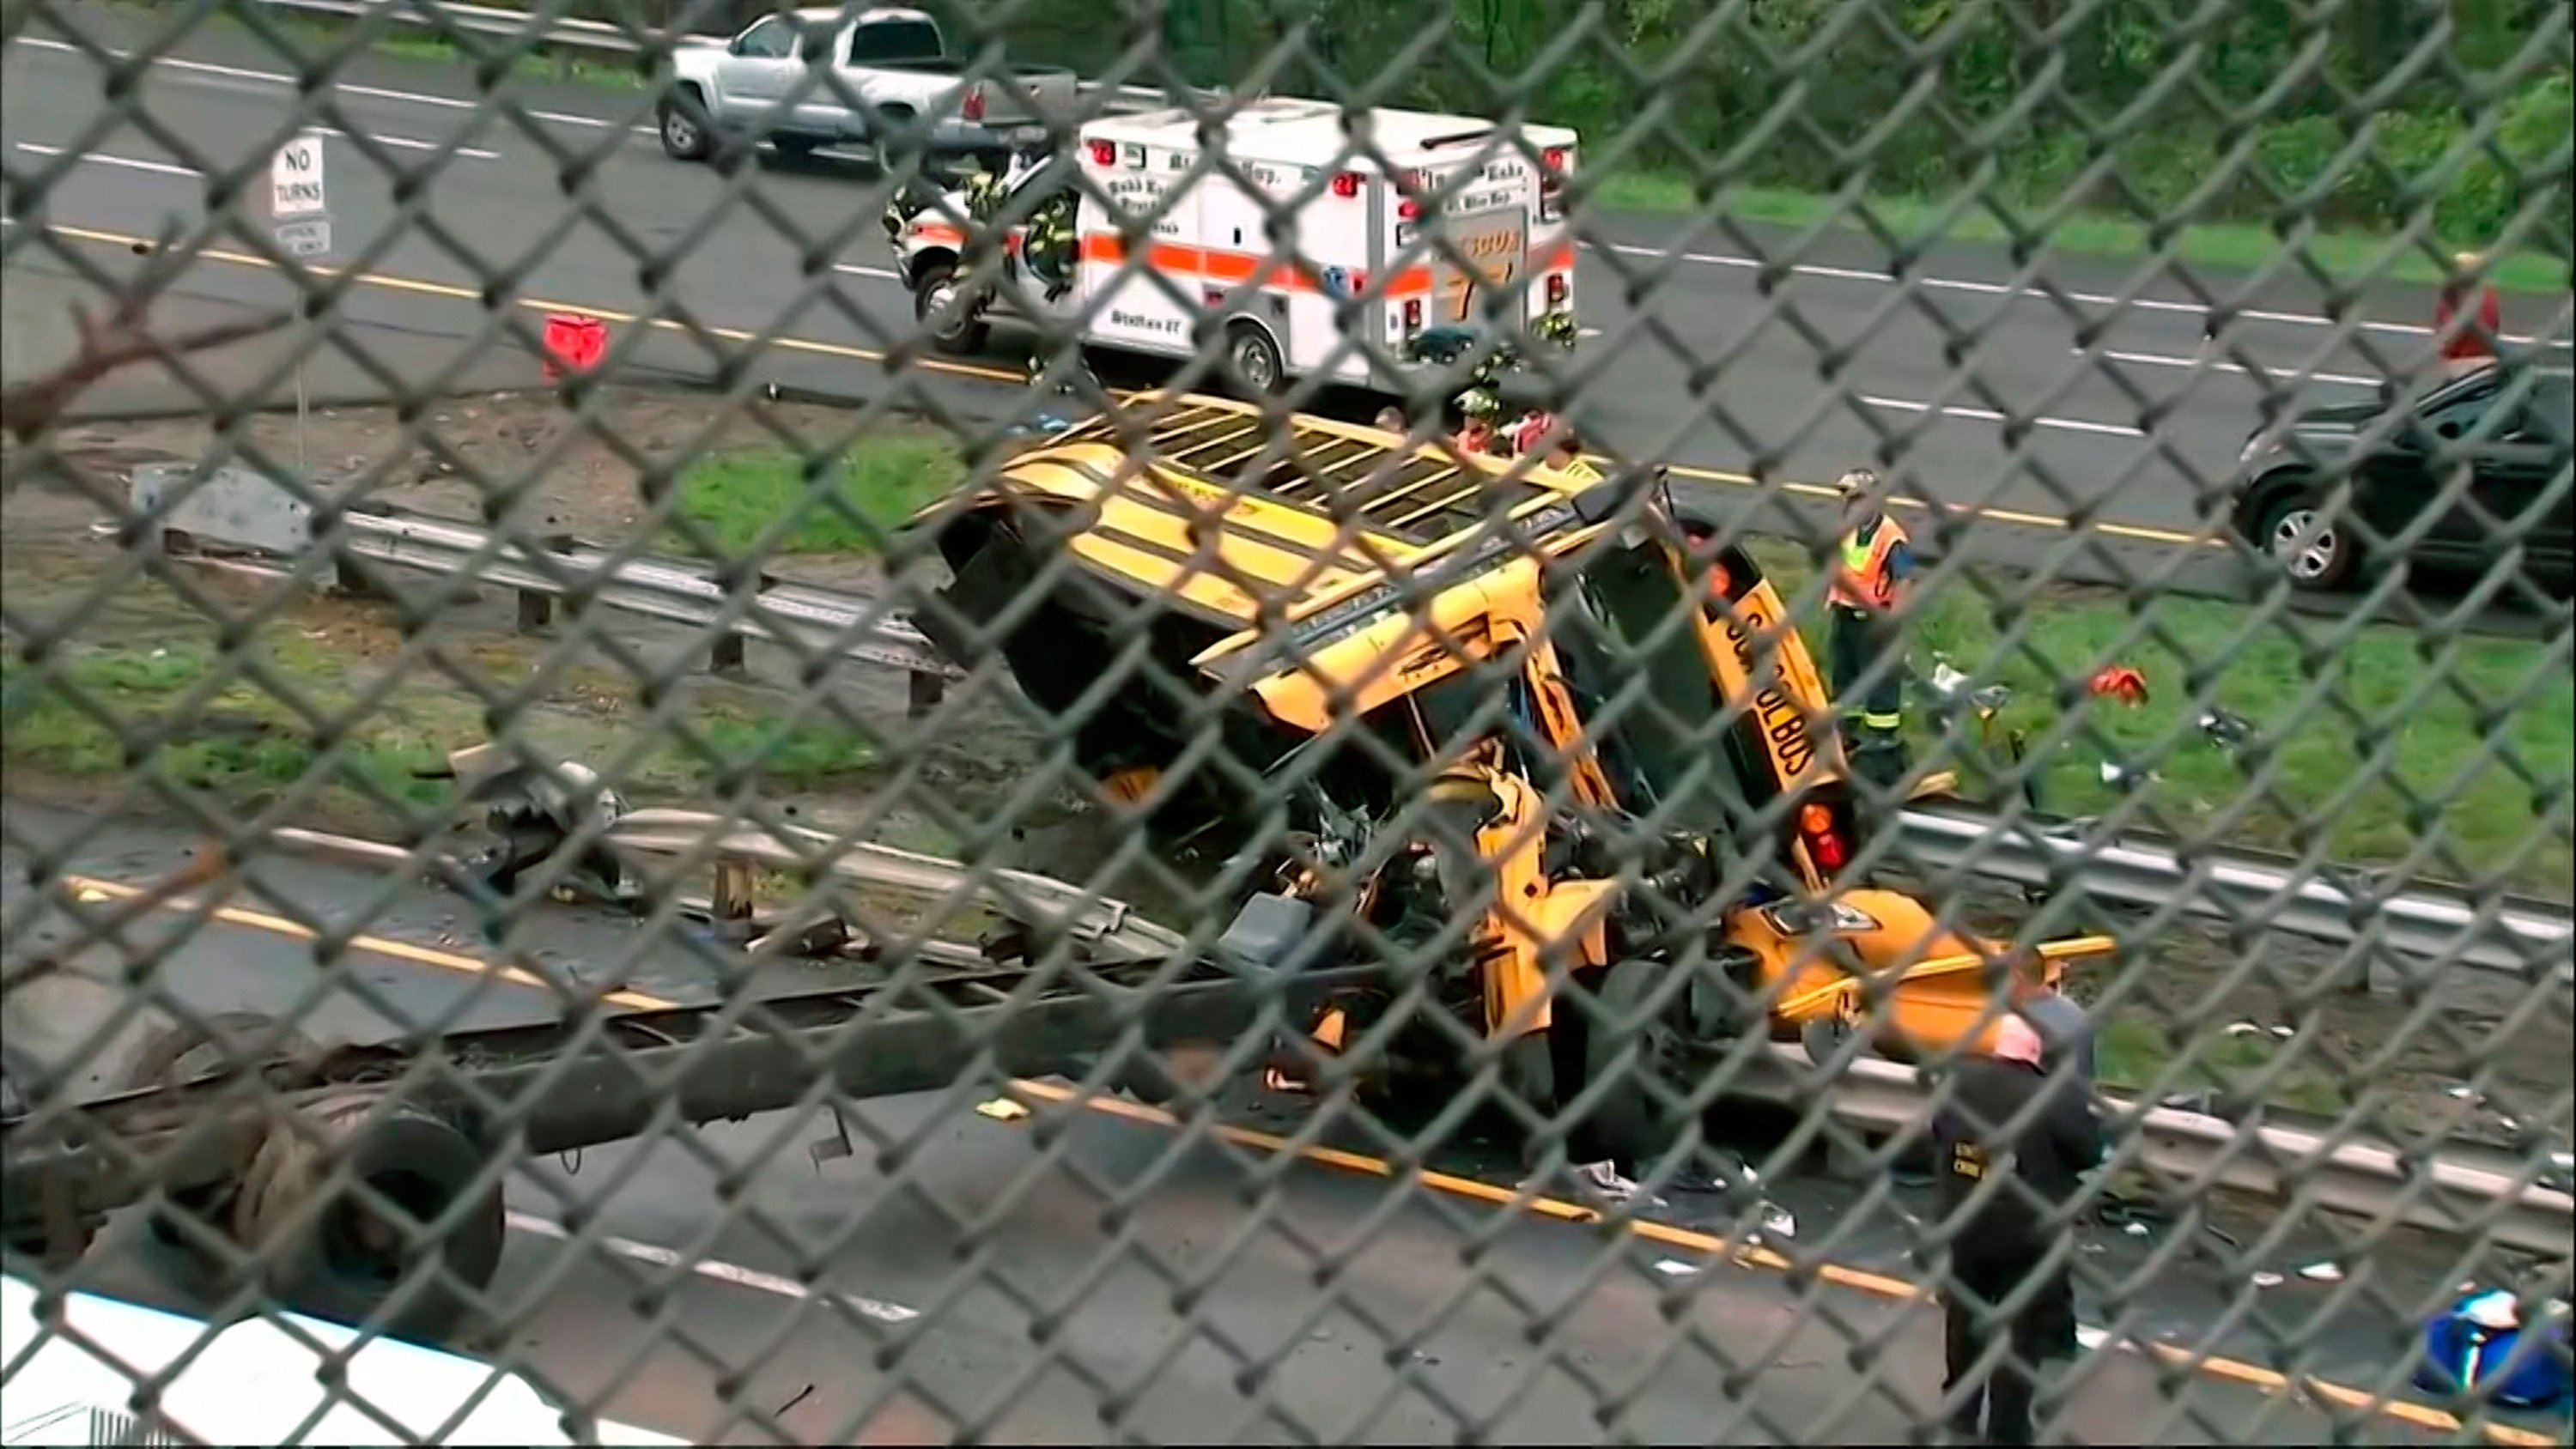 A school bus and a dump truck were involved in a serious accident Thursday morning in Mount Olive Township in Morris County, New Jersey, according to the township's mayor and a verified tweet from New Jersey State Police.